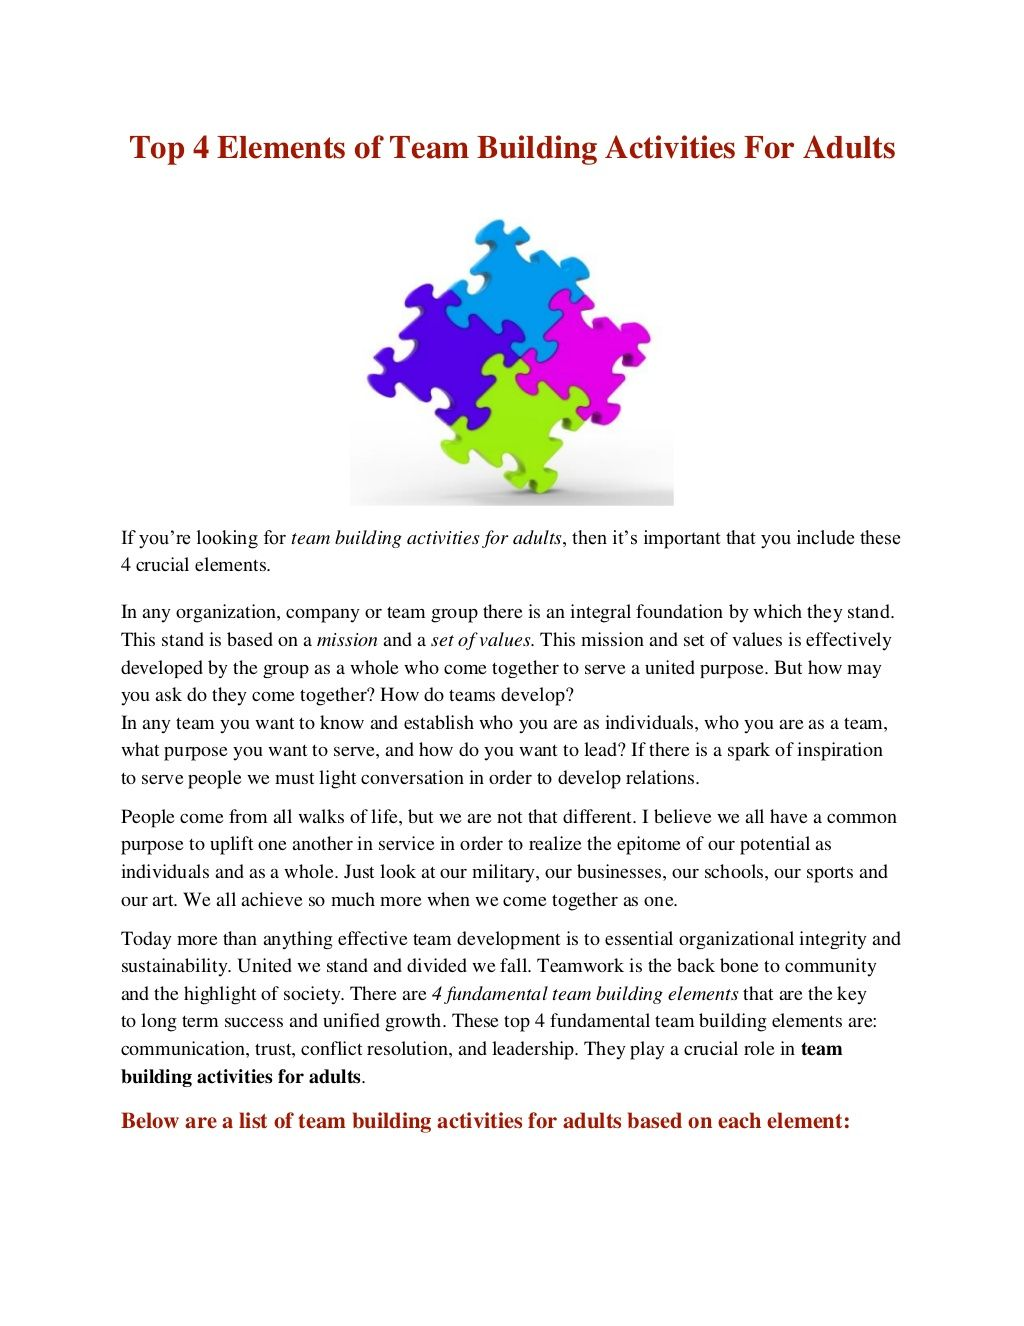 team building activities for adults | team building | team building